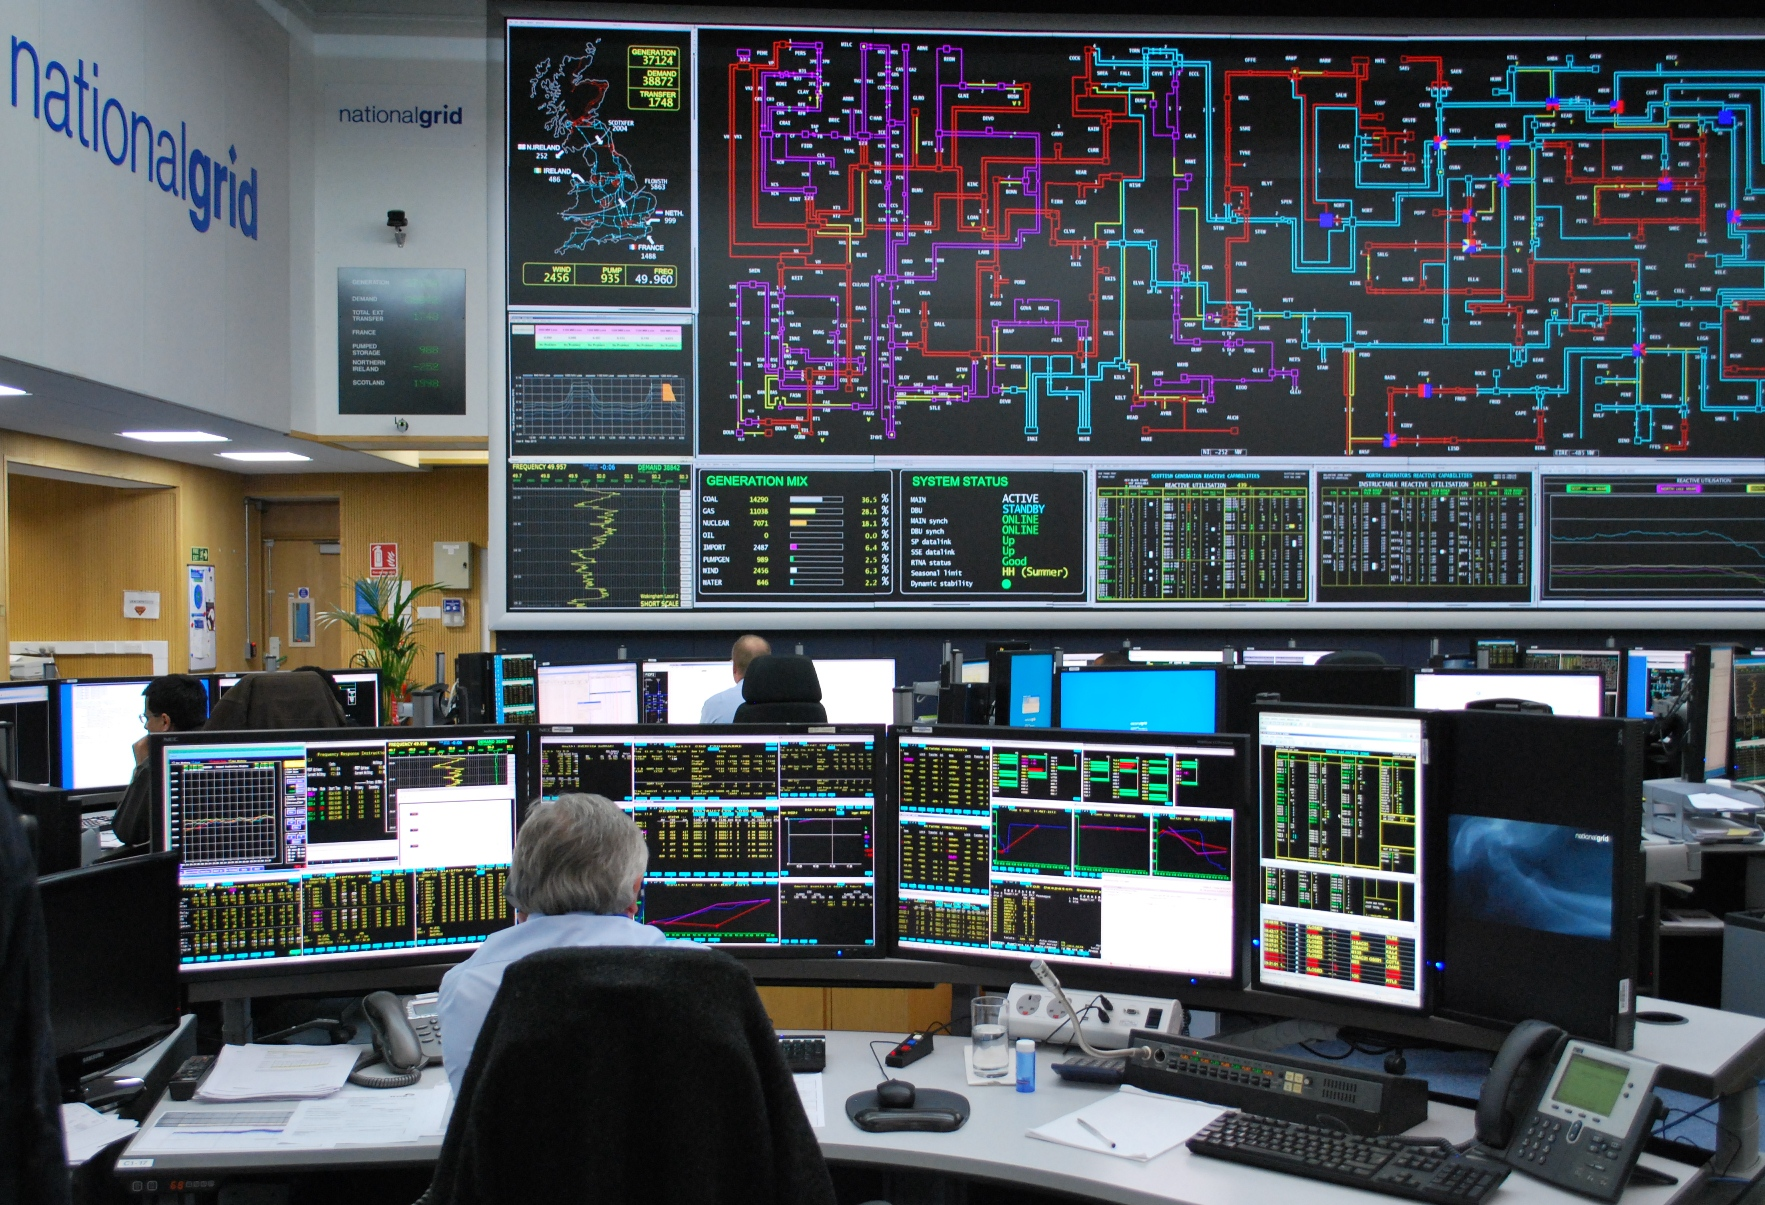 The UK National Grid's Control Centre